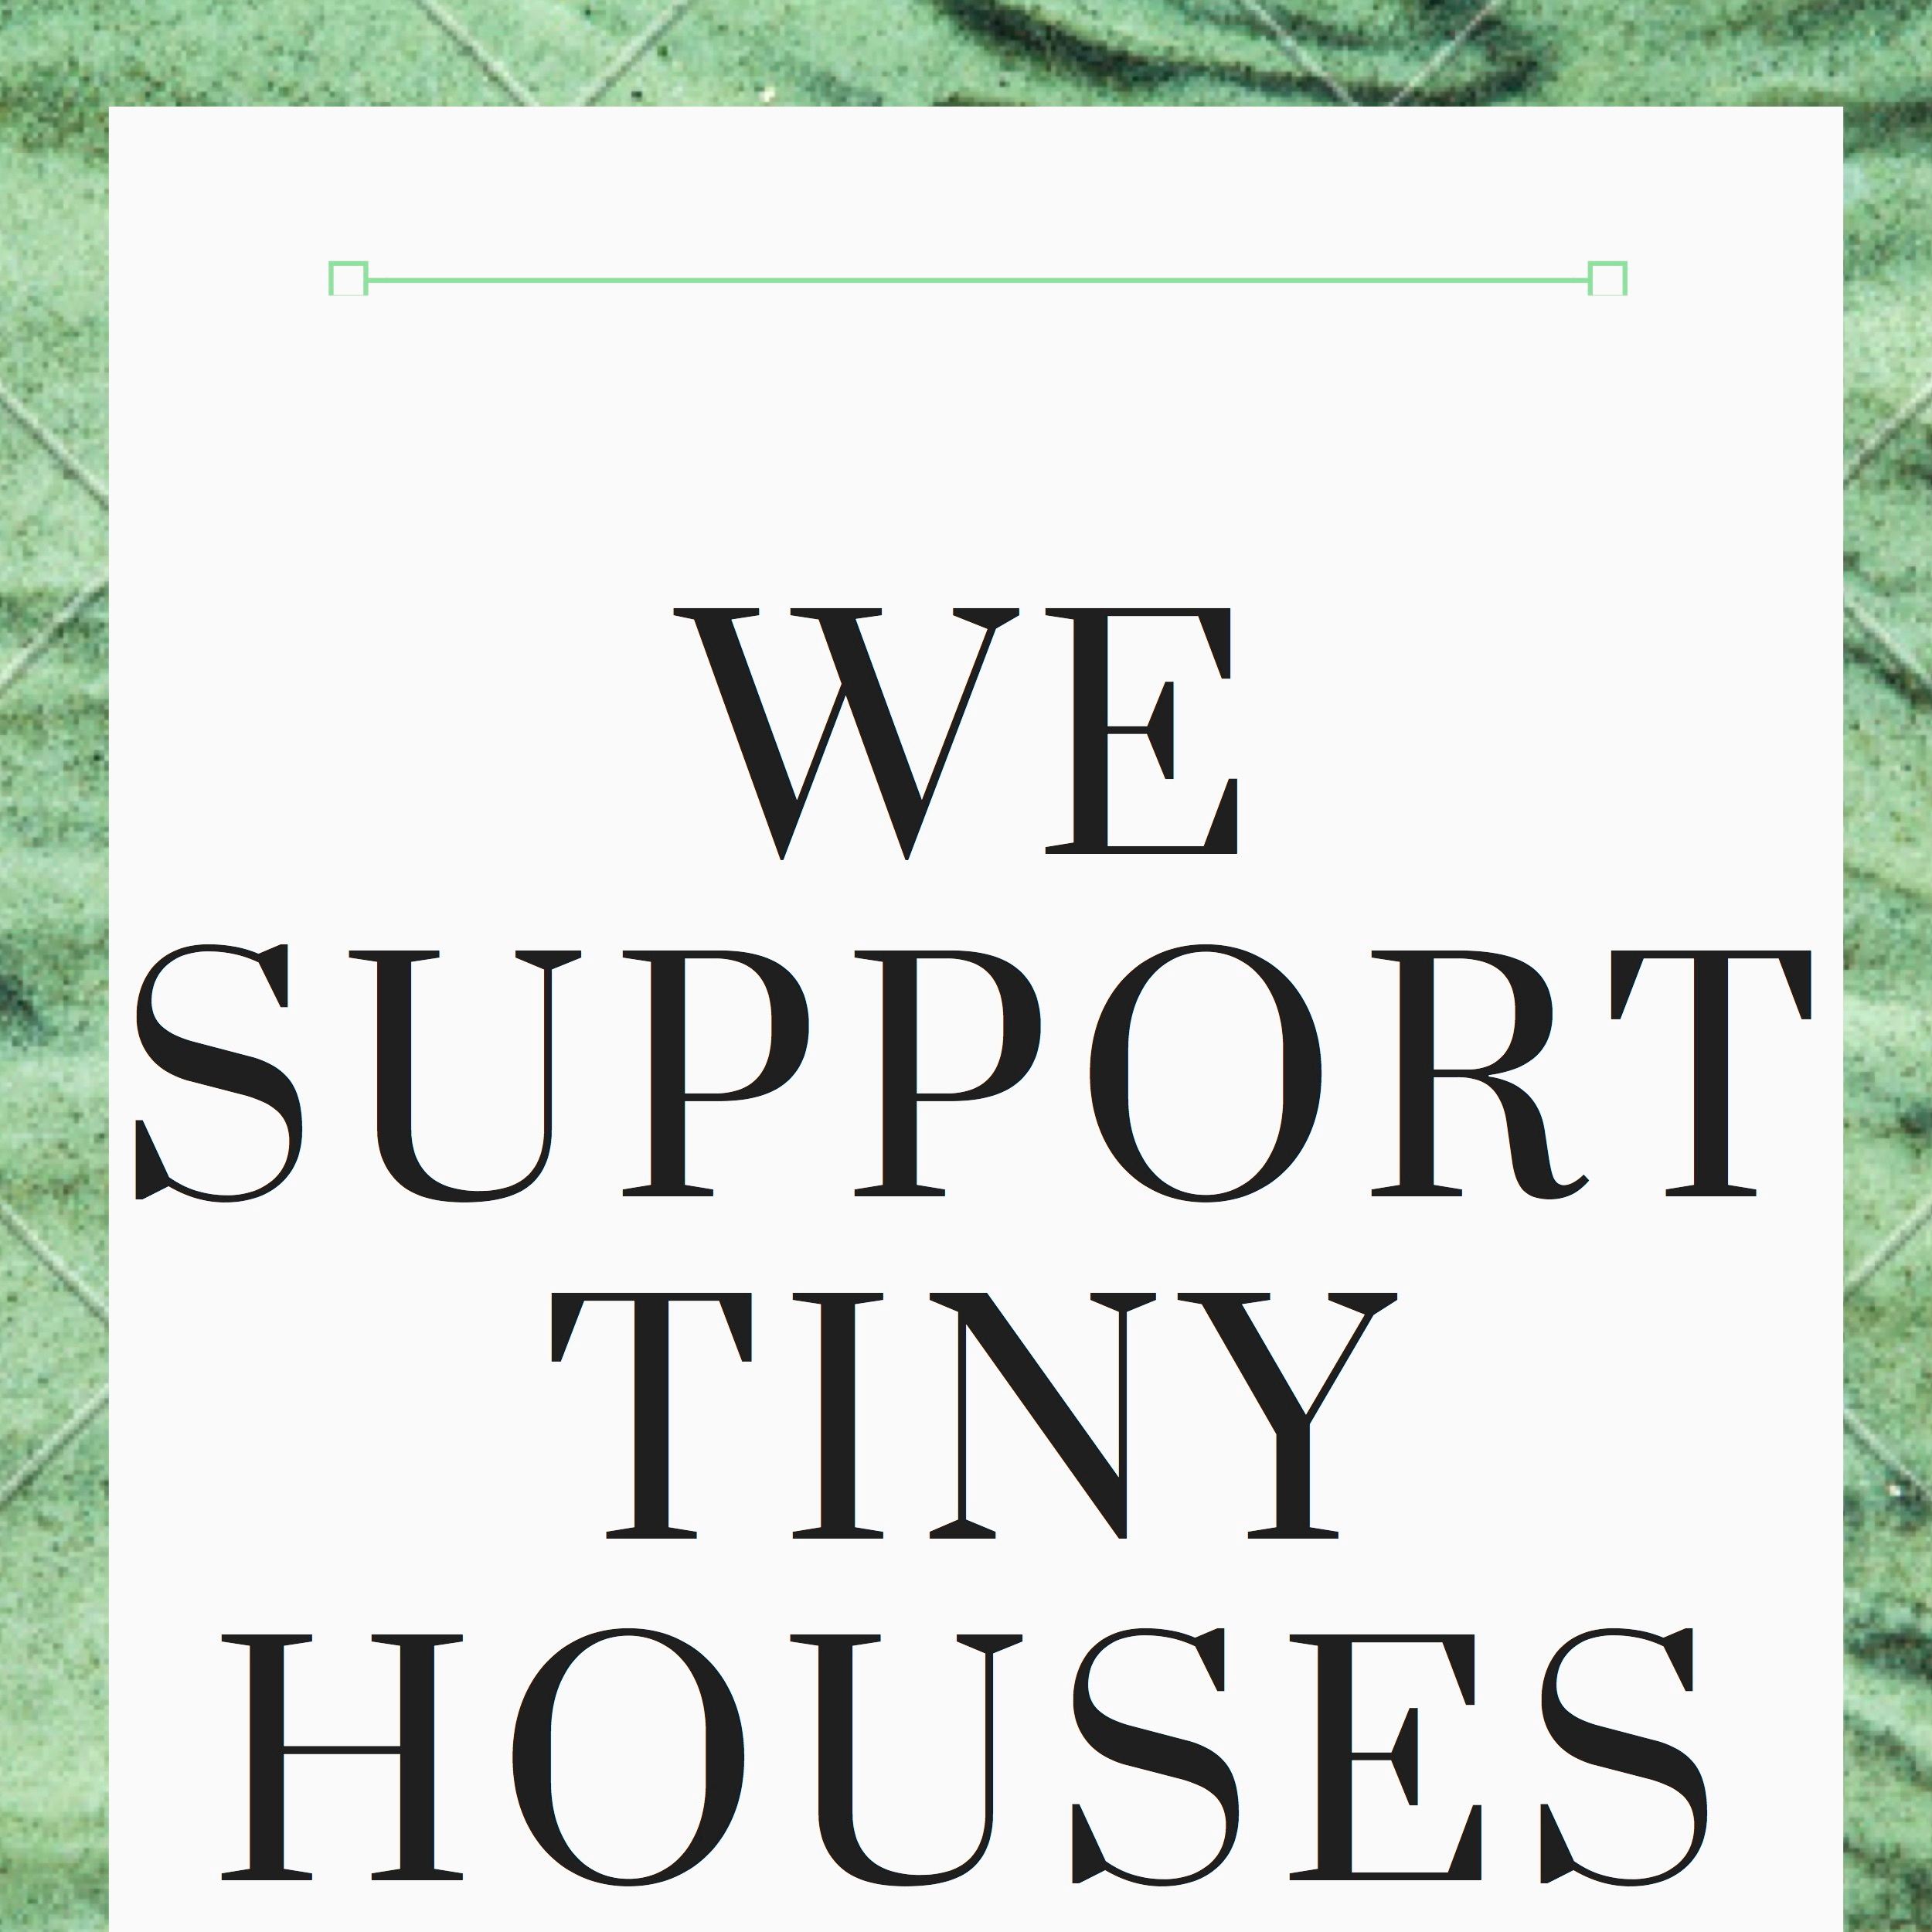 Local Advocates, Routt County Tiny House Collective